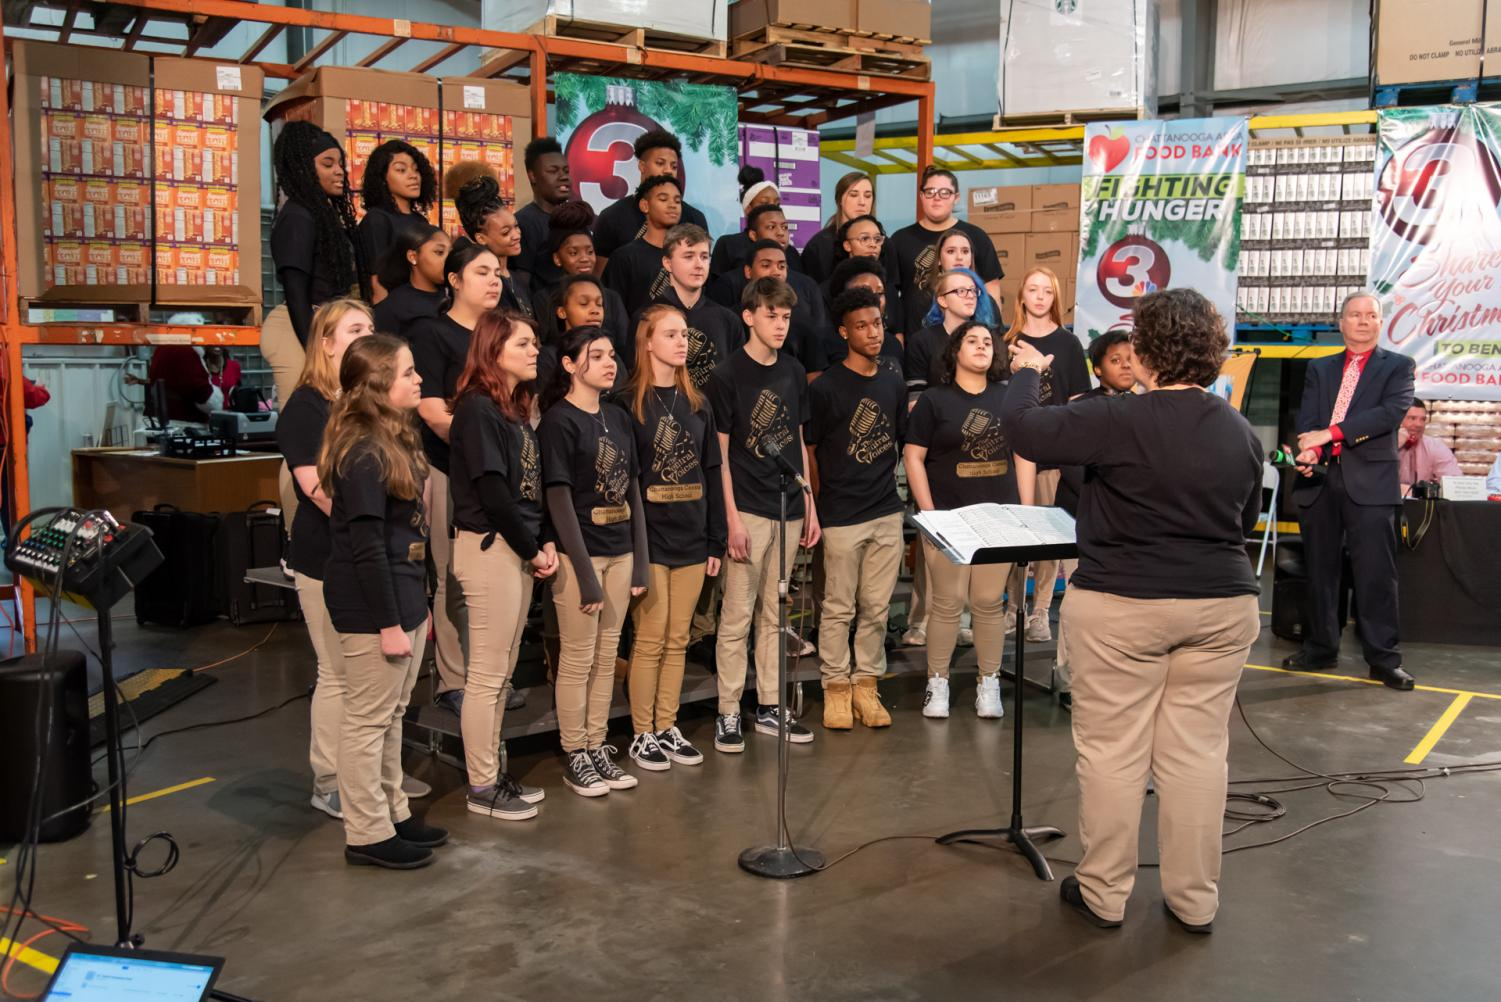 The Central Voices sing at the food bank.